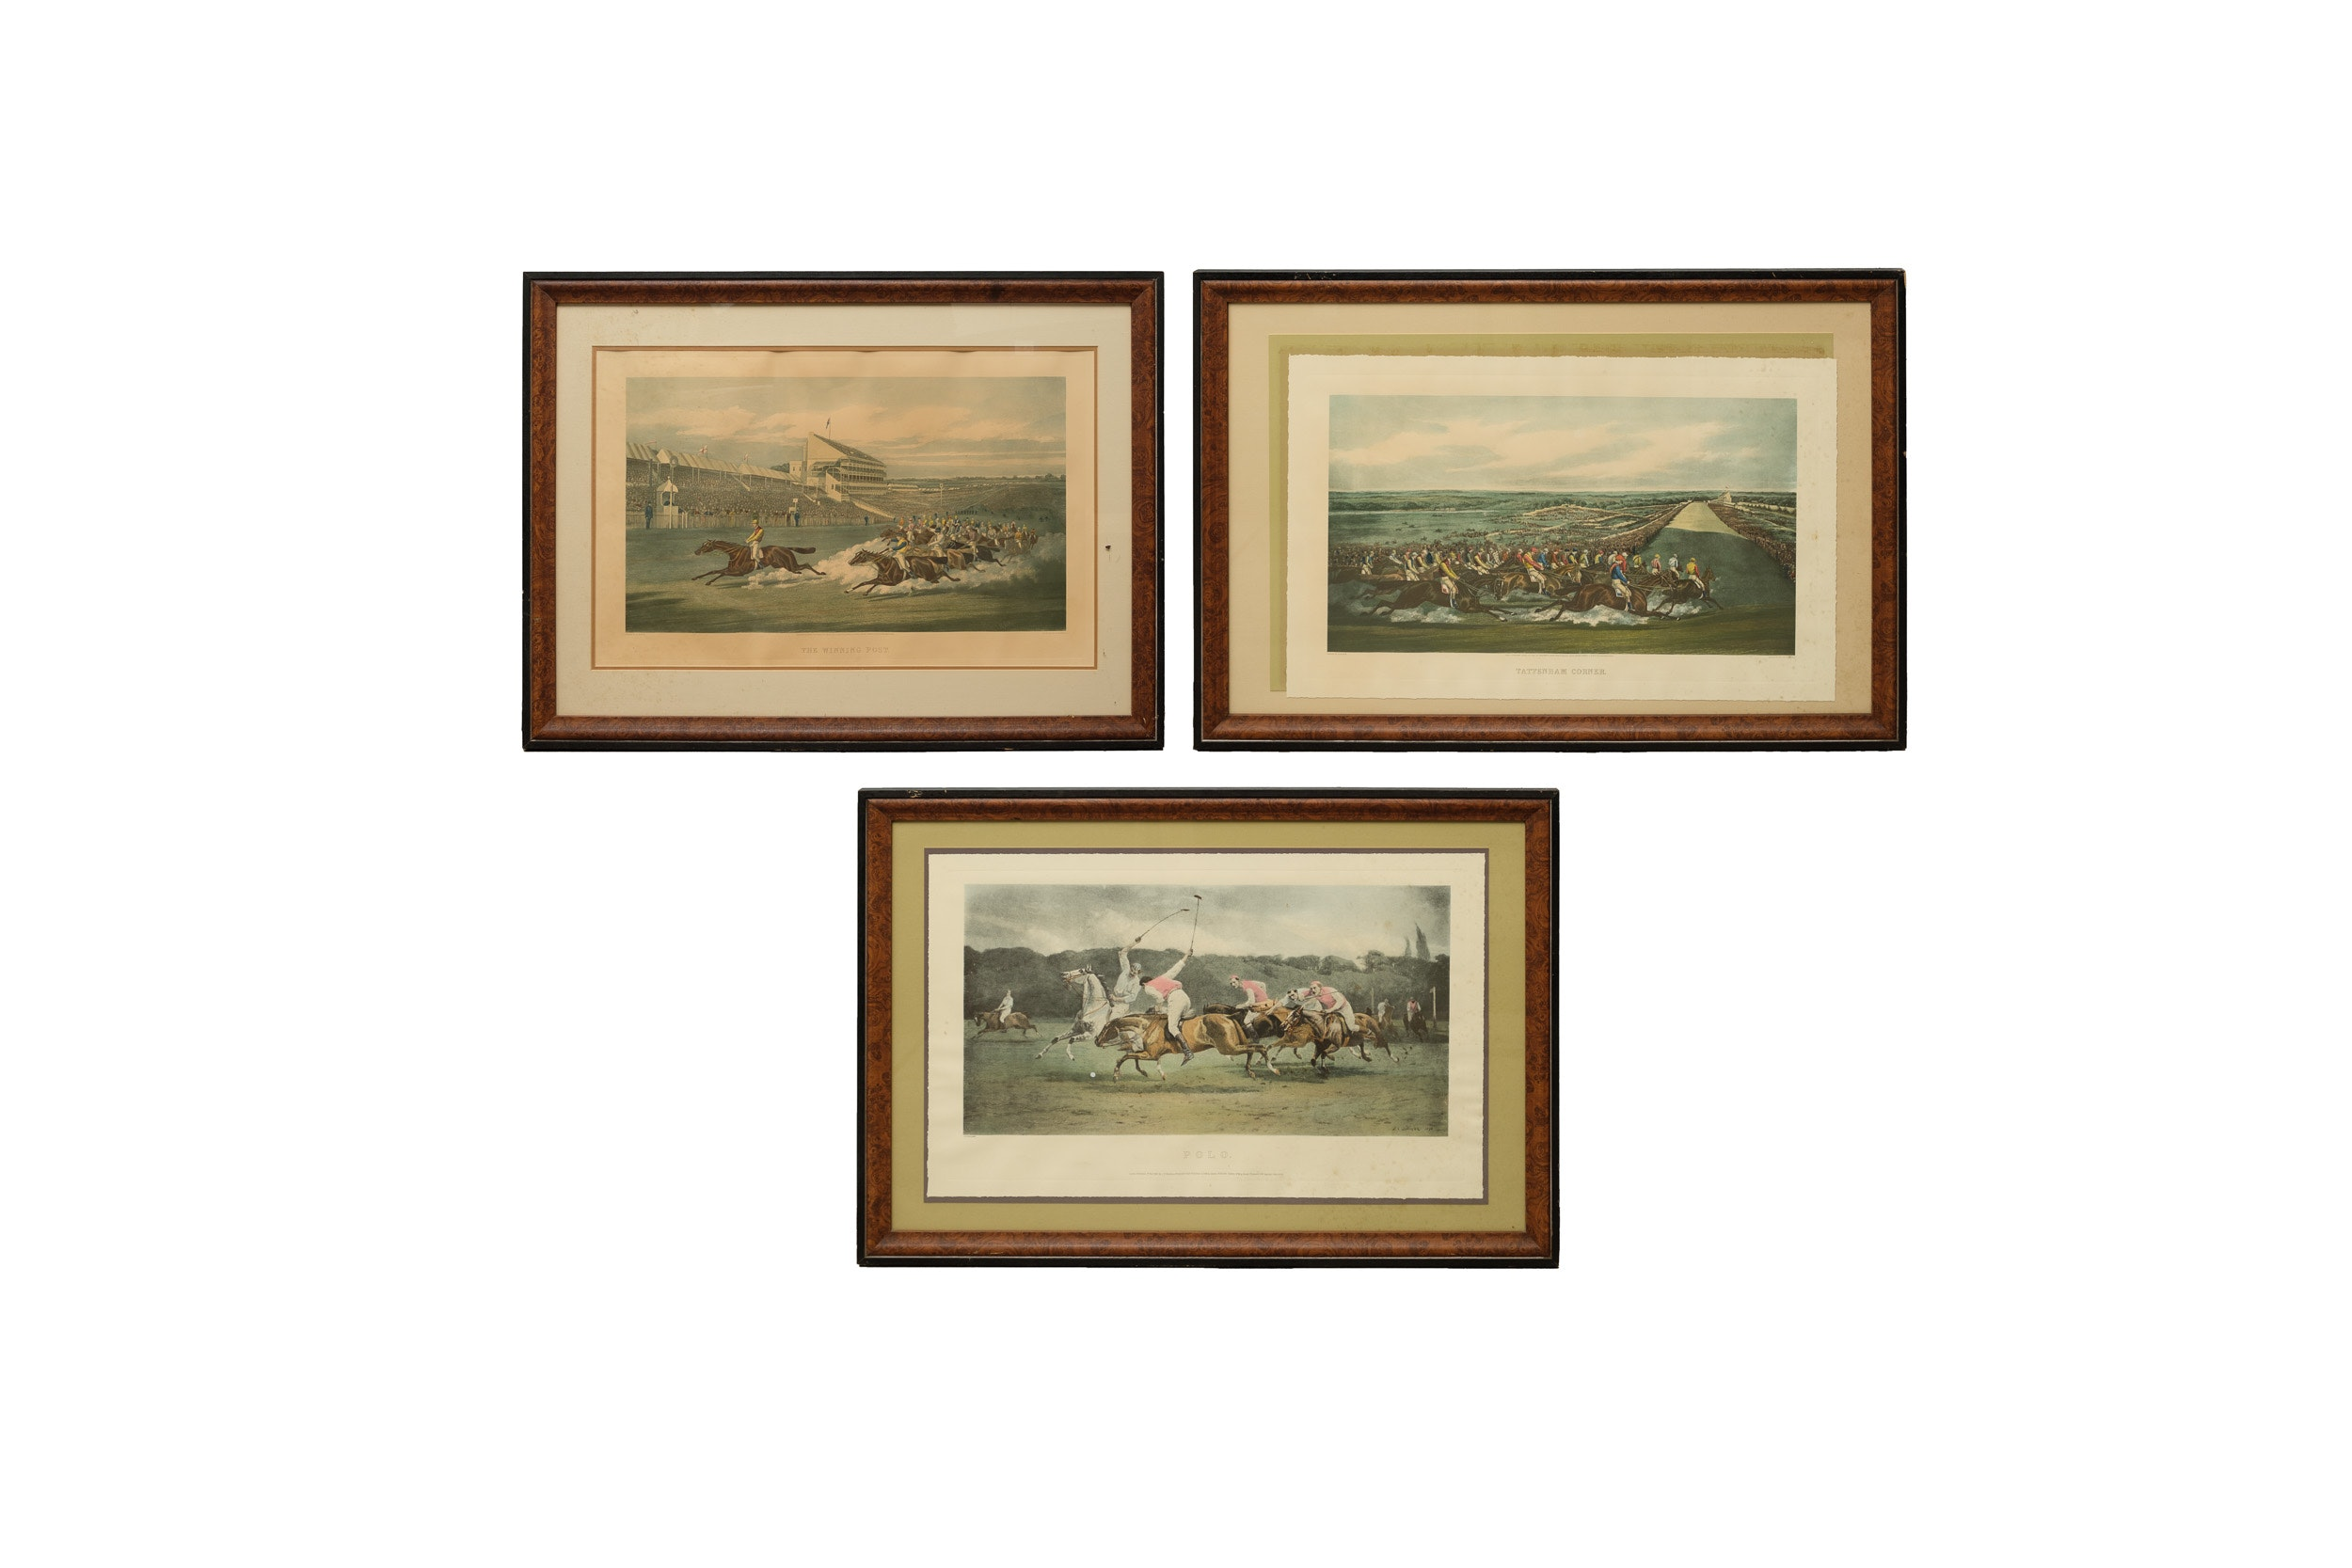 Three Hand-Colored Equine Engravings